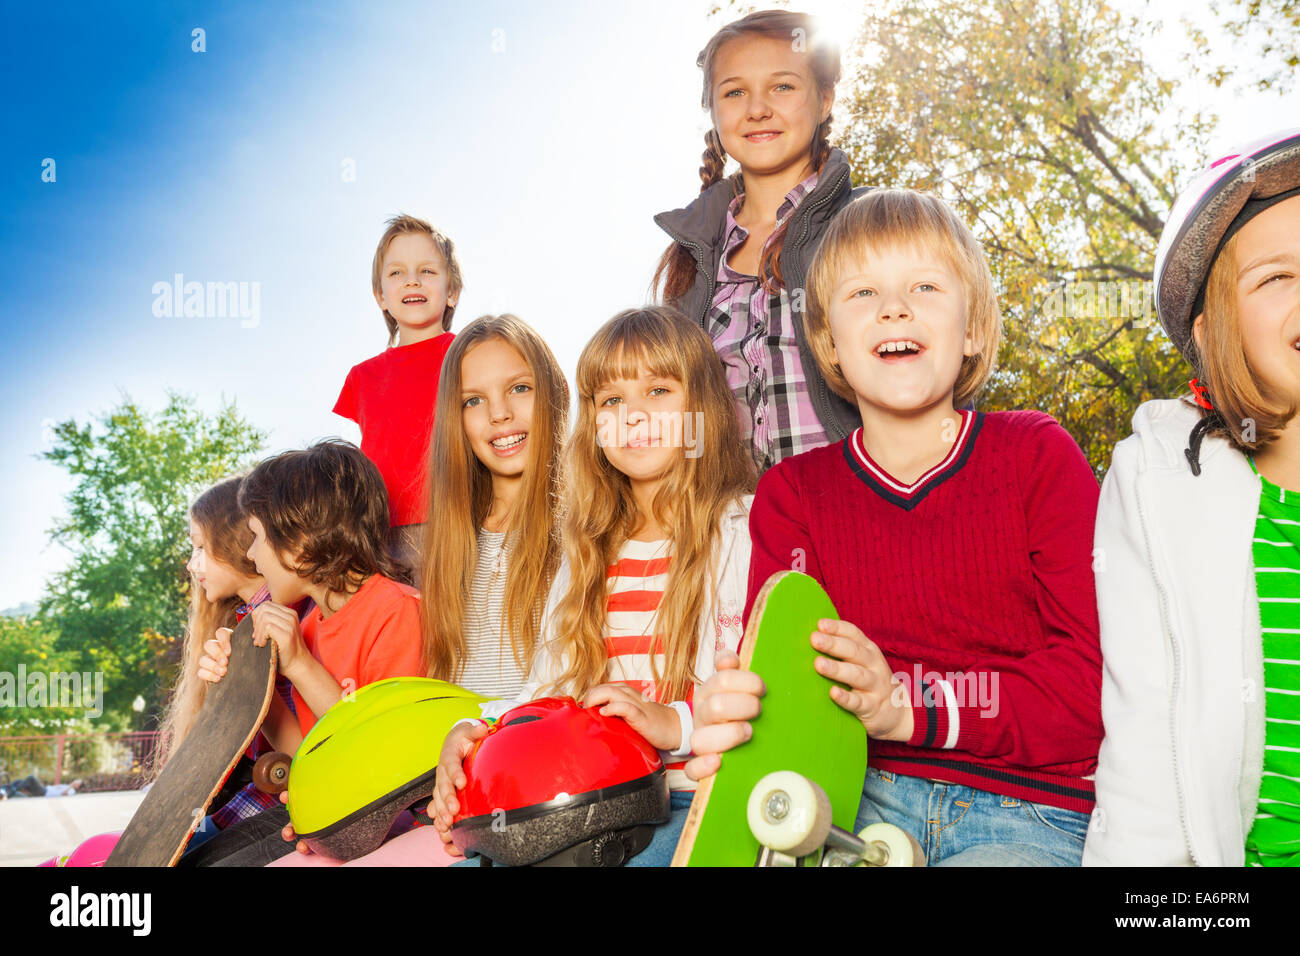 Positive children with skateboards and helmets - Stock Image